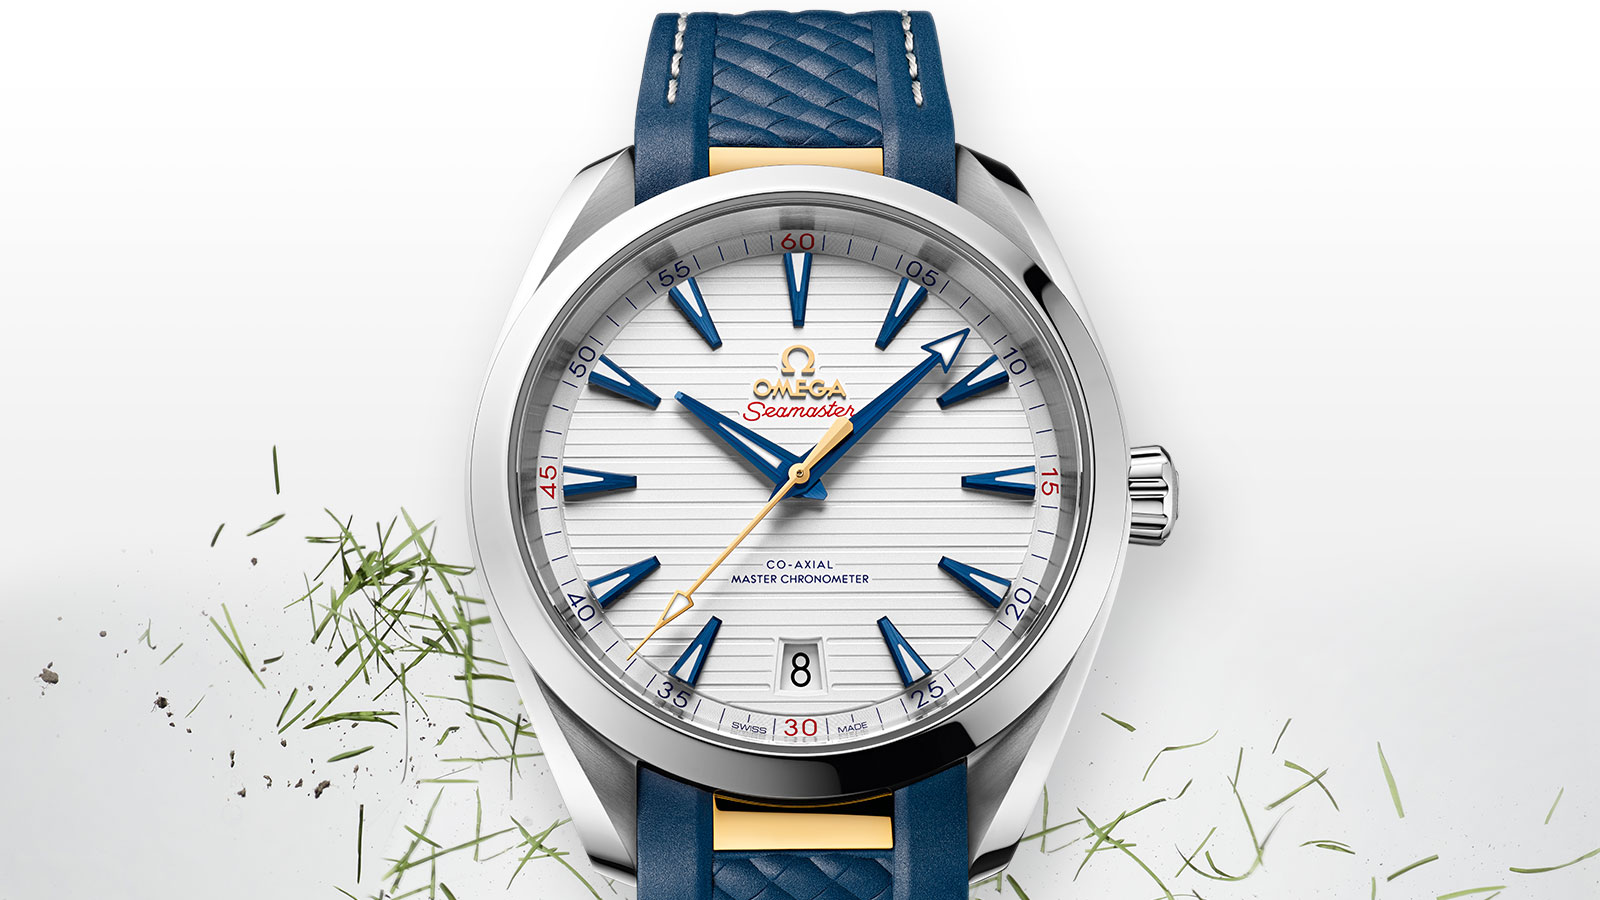 Seamaster Aqua Terra 150M Aqua Terra 150M Omega Co‑Axial Master Chronometer 41 mm Watch - 220.12.41.21.02.004